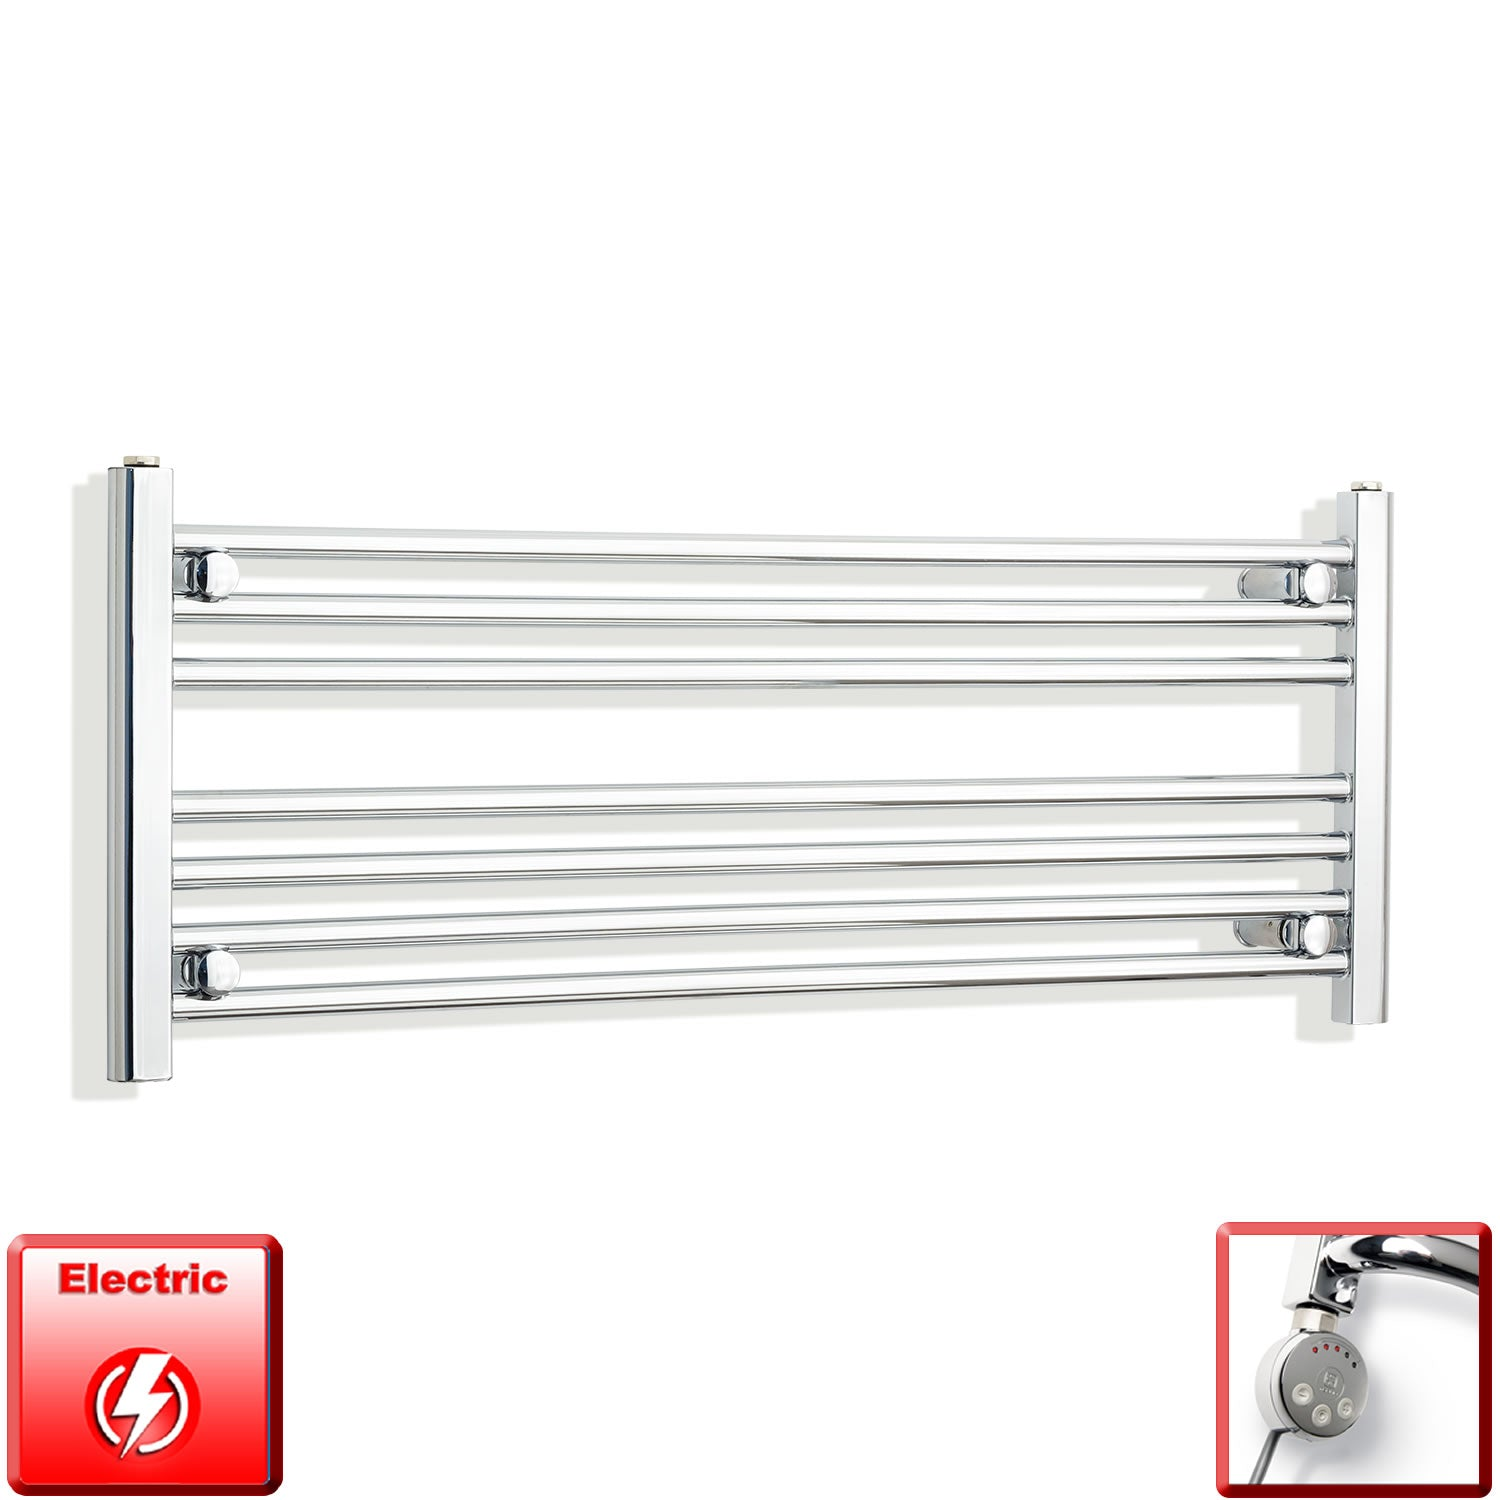 1200mm Wide 400mm High Pre-Filled Chrome Electric Towel Rail Radiator With Thermostatic MOA Element